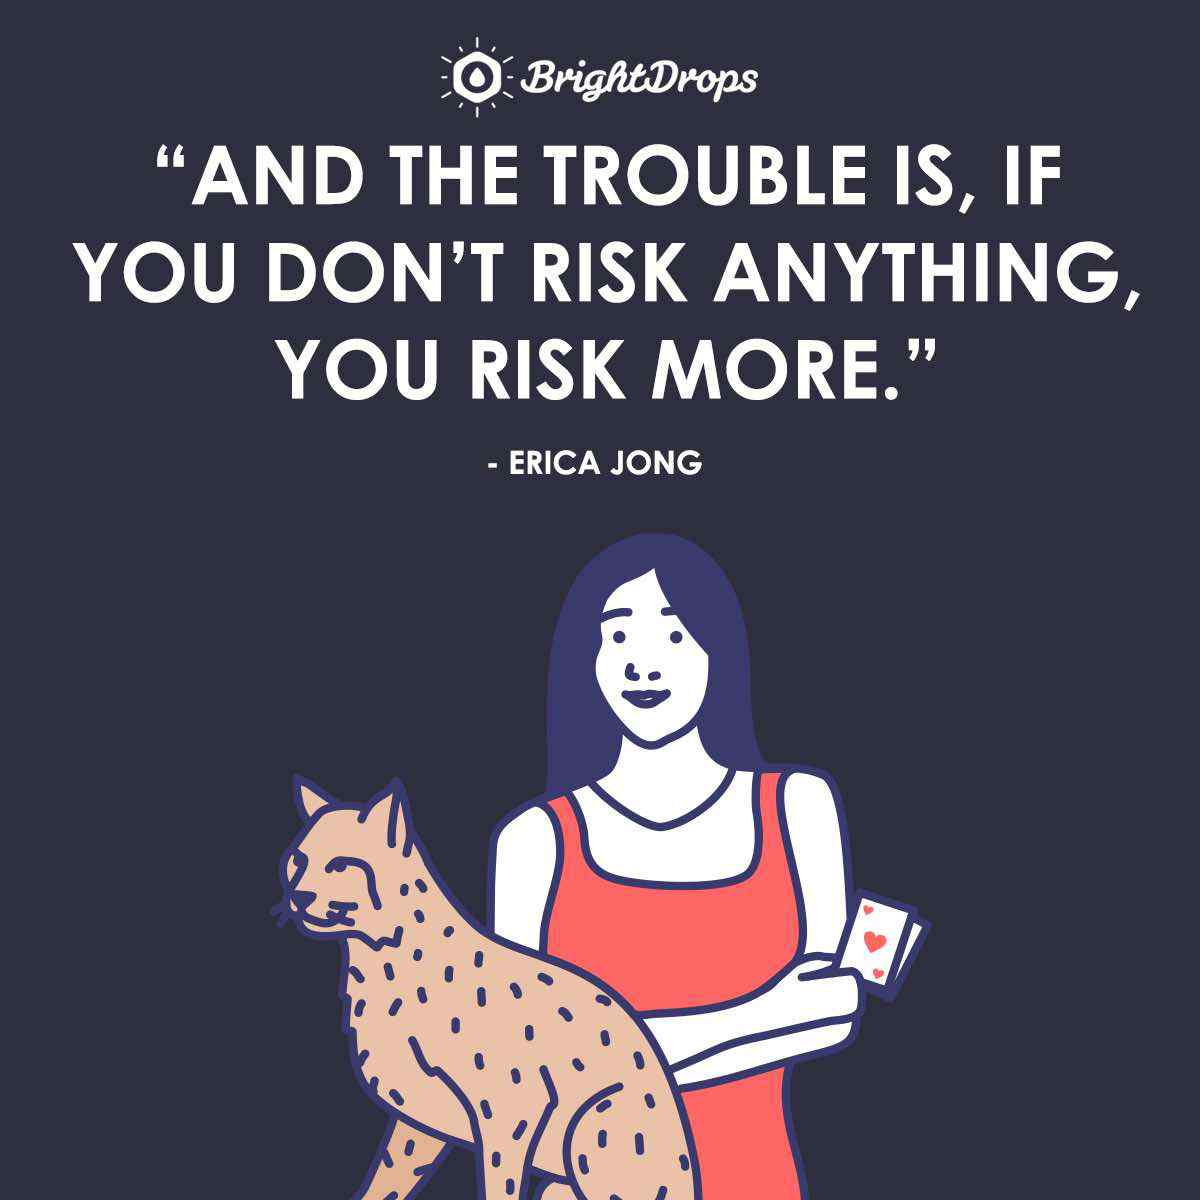 """And the trouble is, if you don't risk anything, you risk more."" ~ Erica Jong"